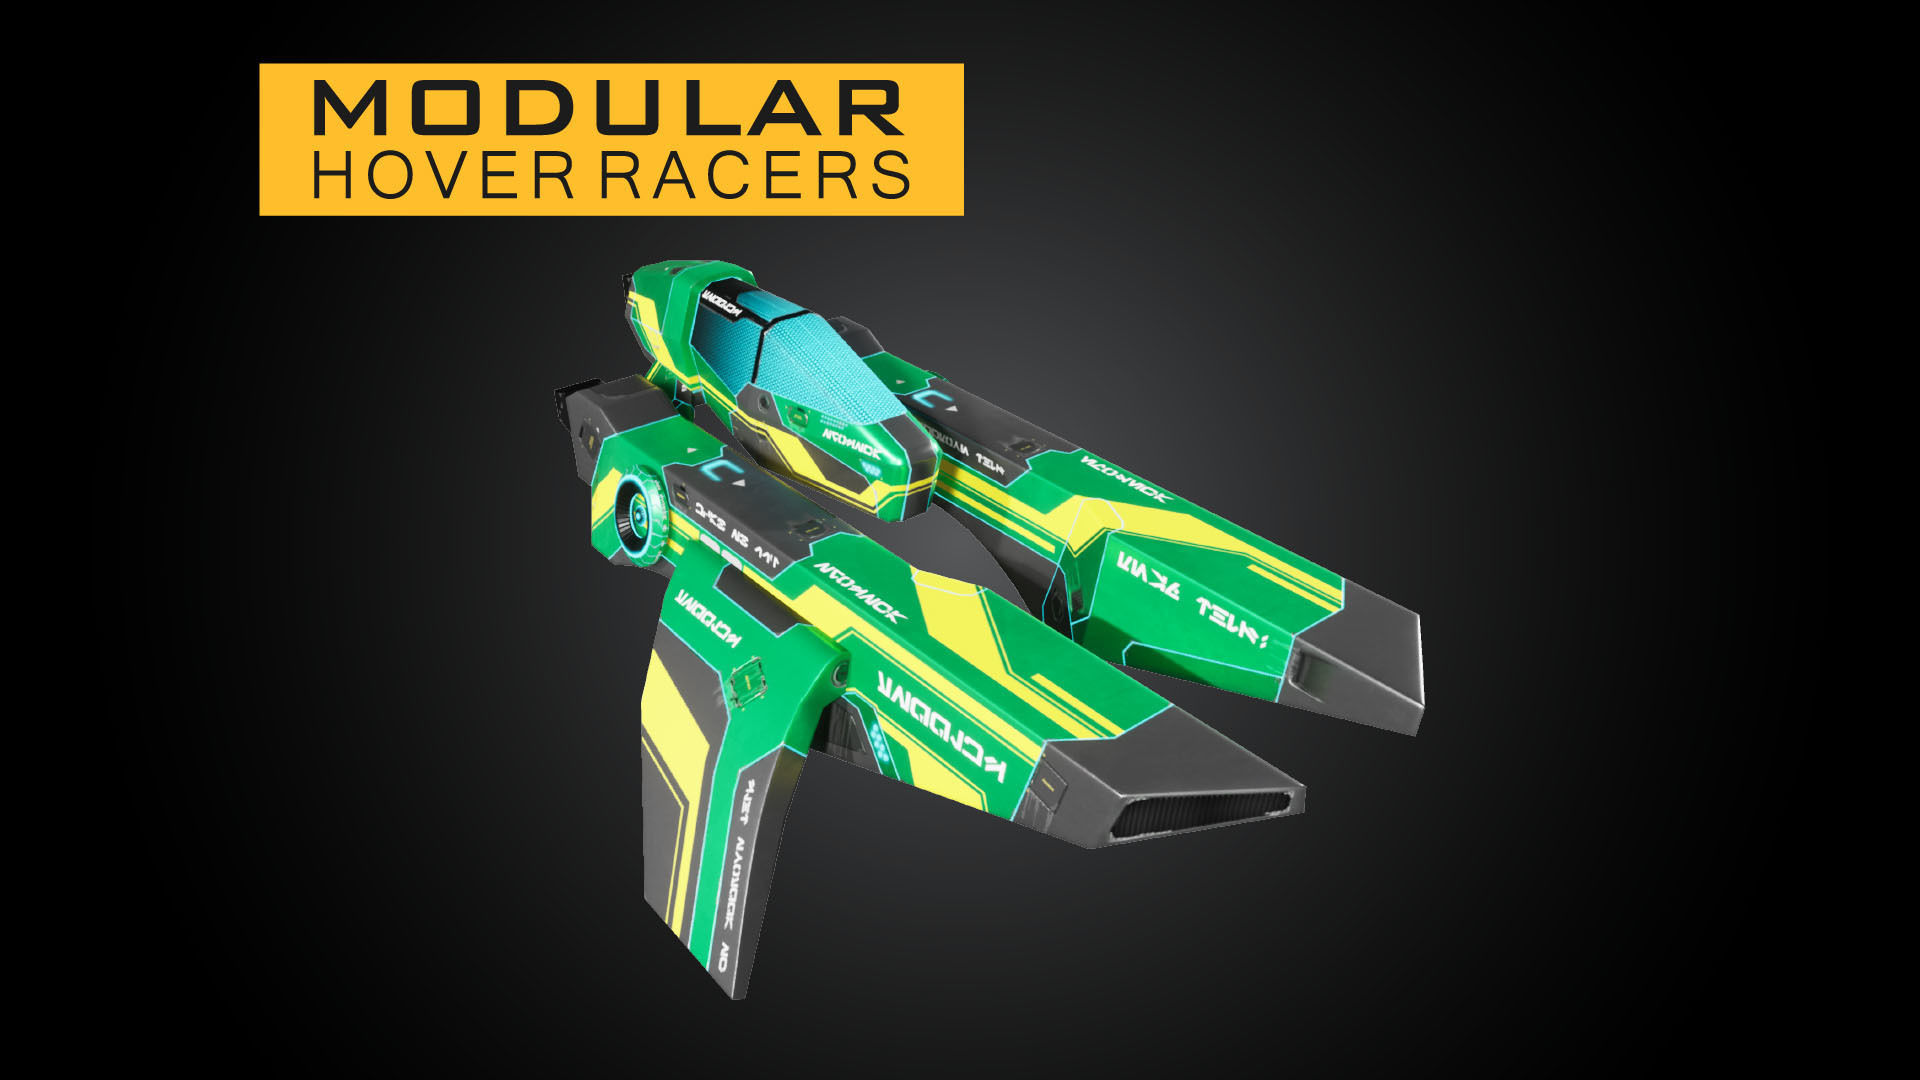 Modular Hover Racers